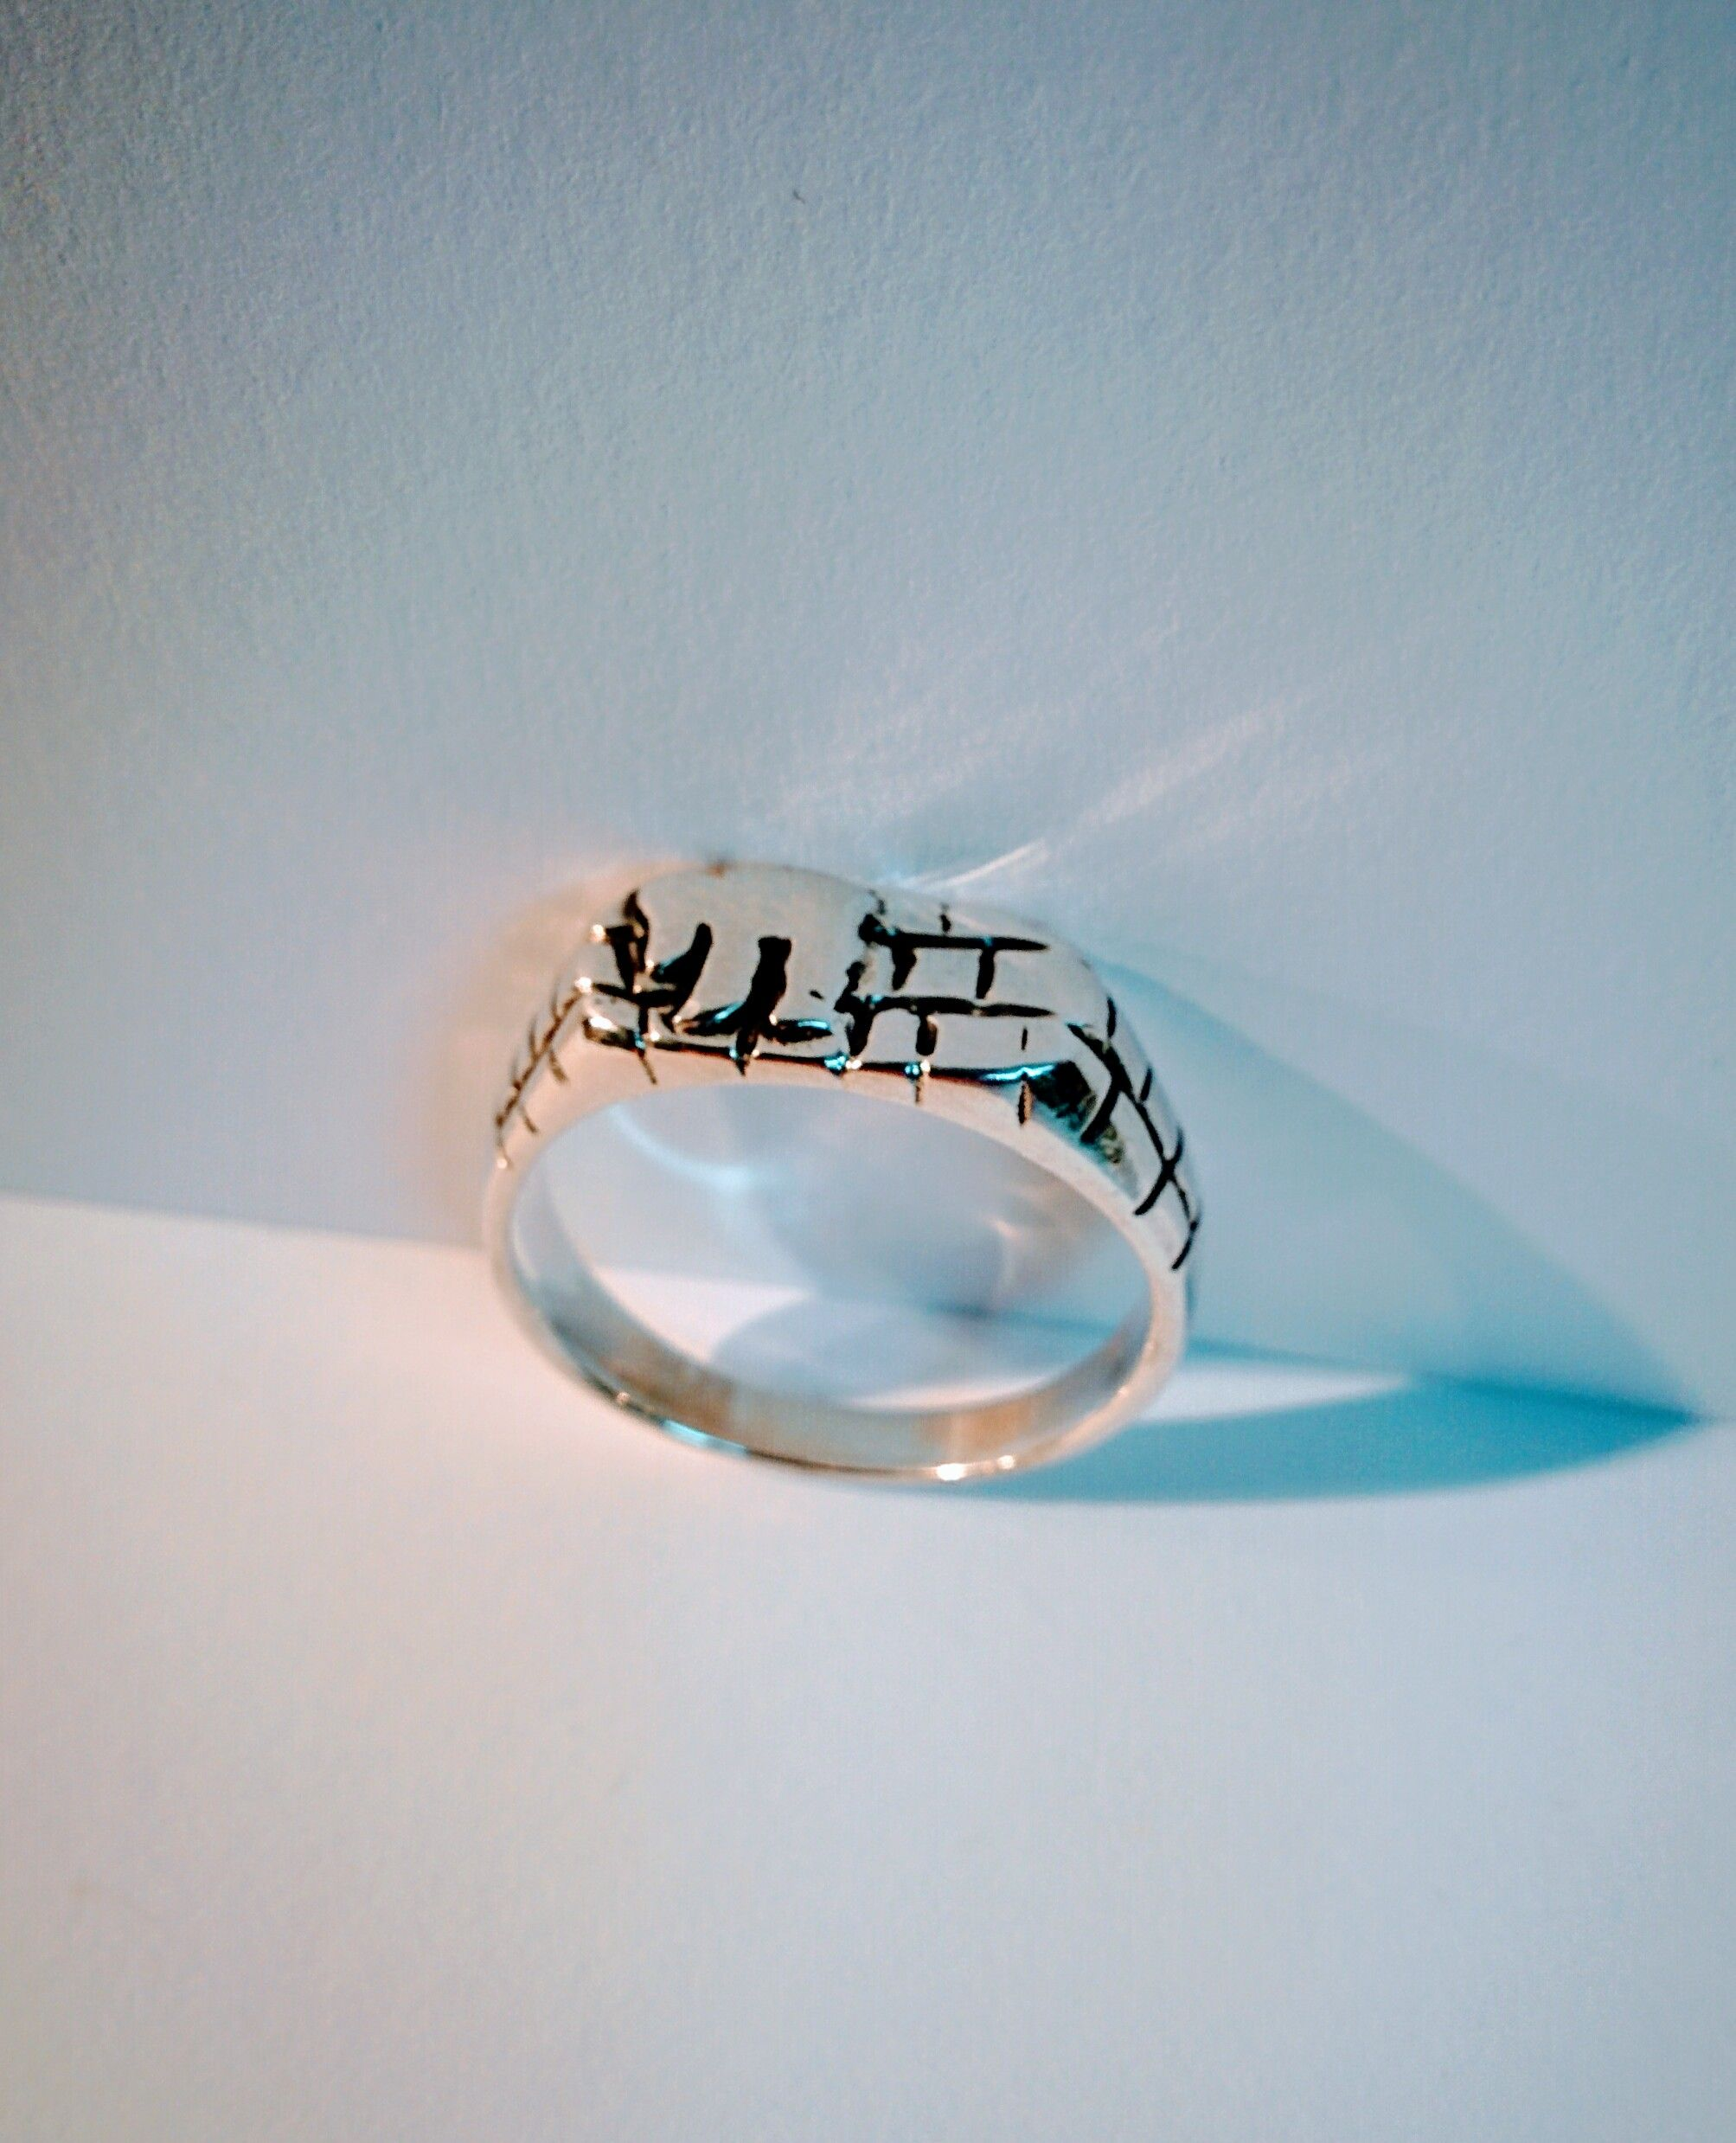 573b0c9306e Chai Ring, Silver with Jerusalem Stone Motif, Hebrew Rings, from ...